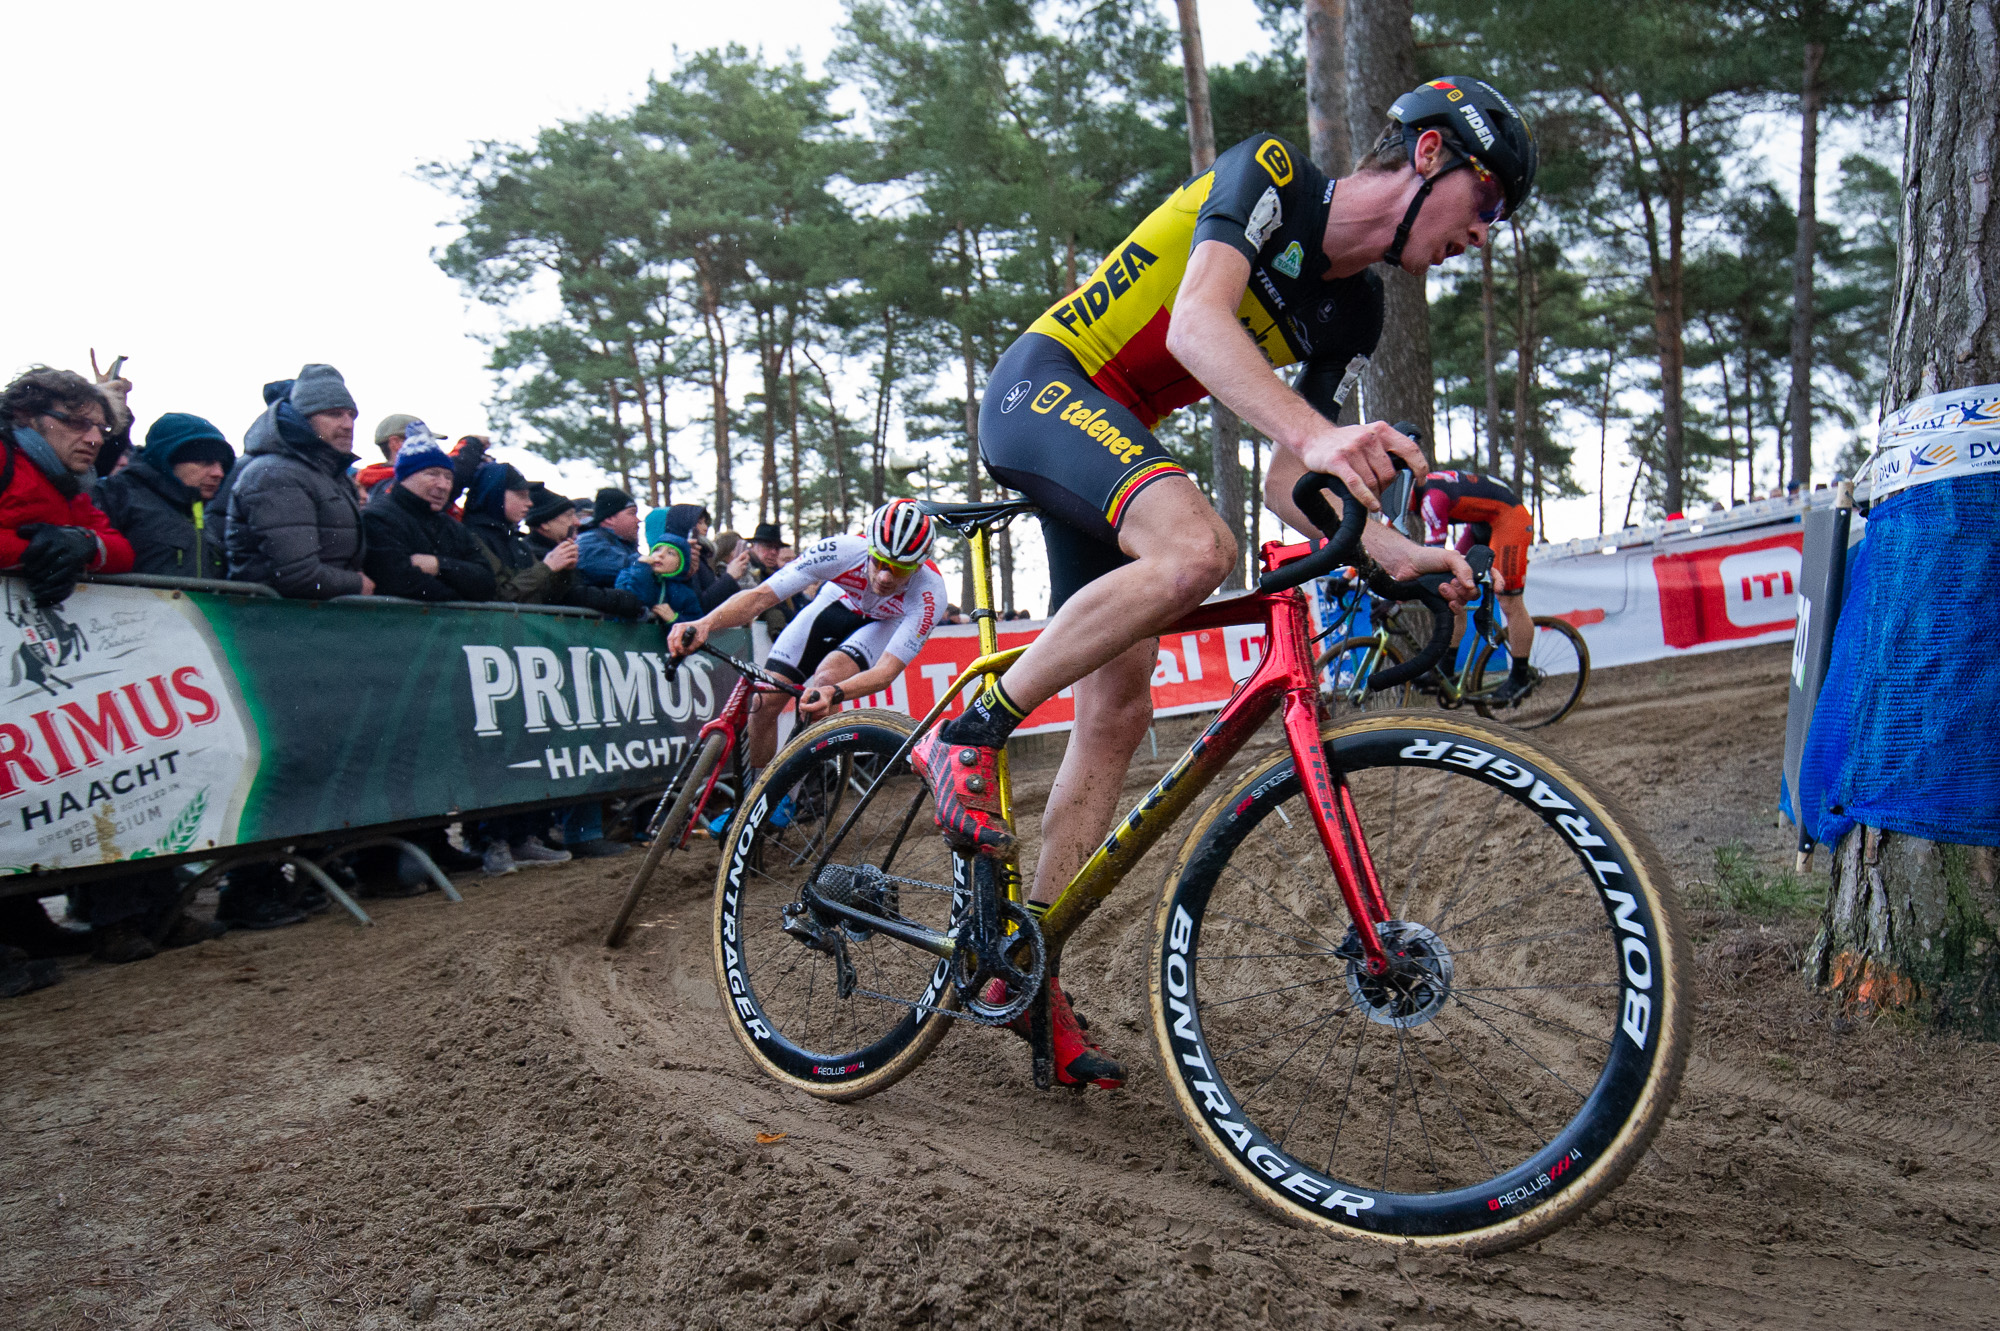 Eventual third place finisher Toon Aerts followed closely by DVDP and Laurens Sweeck.